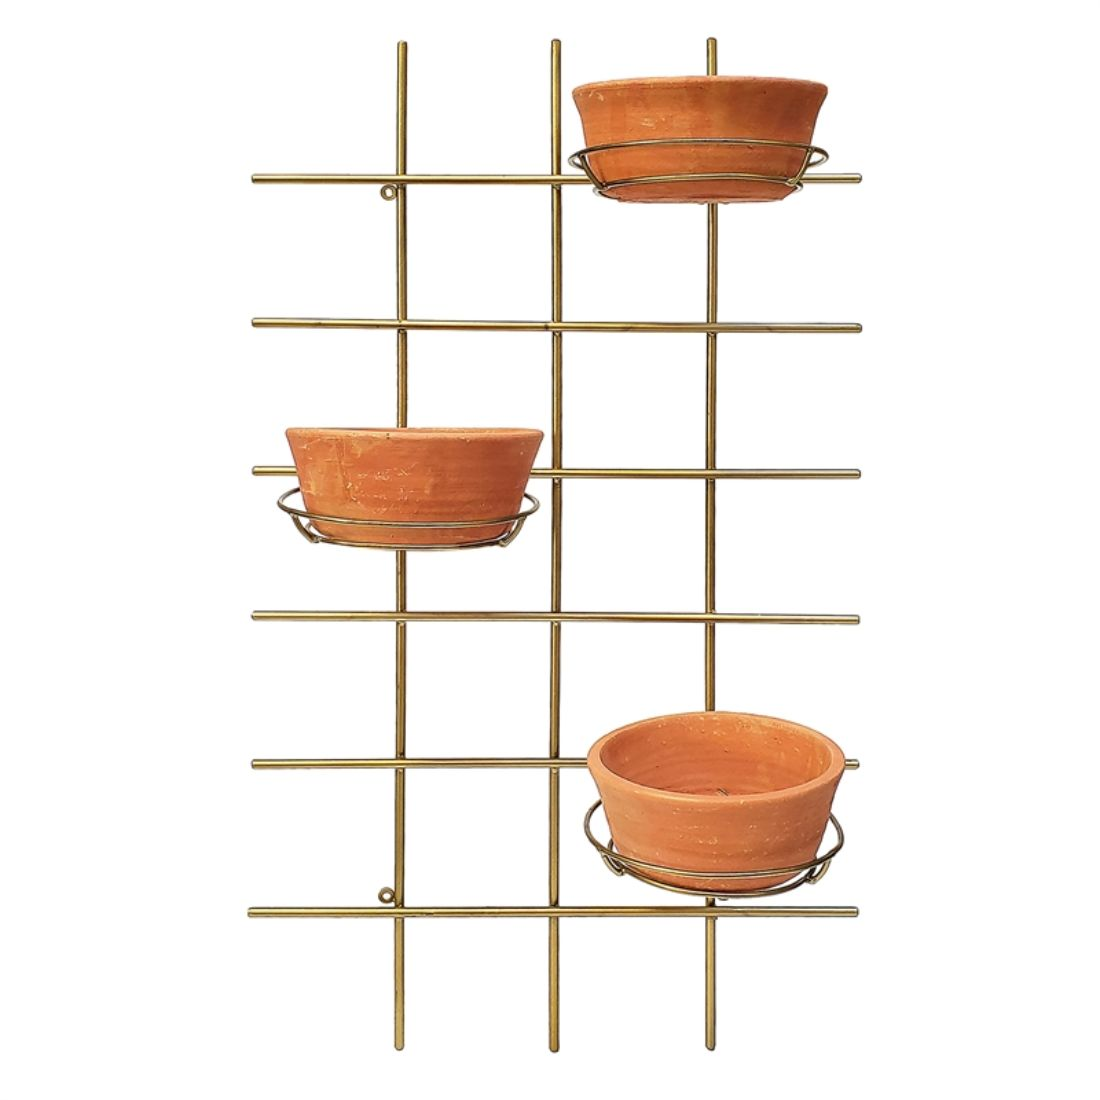 Metal Wall Plant Holder with 3 Terracotta Pots